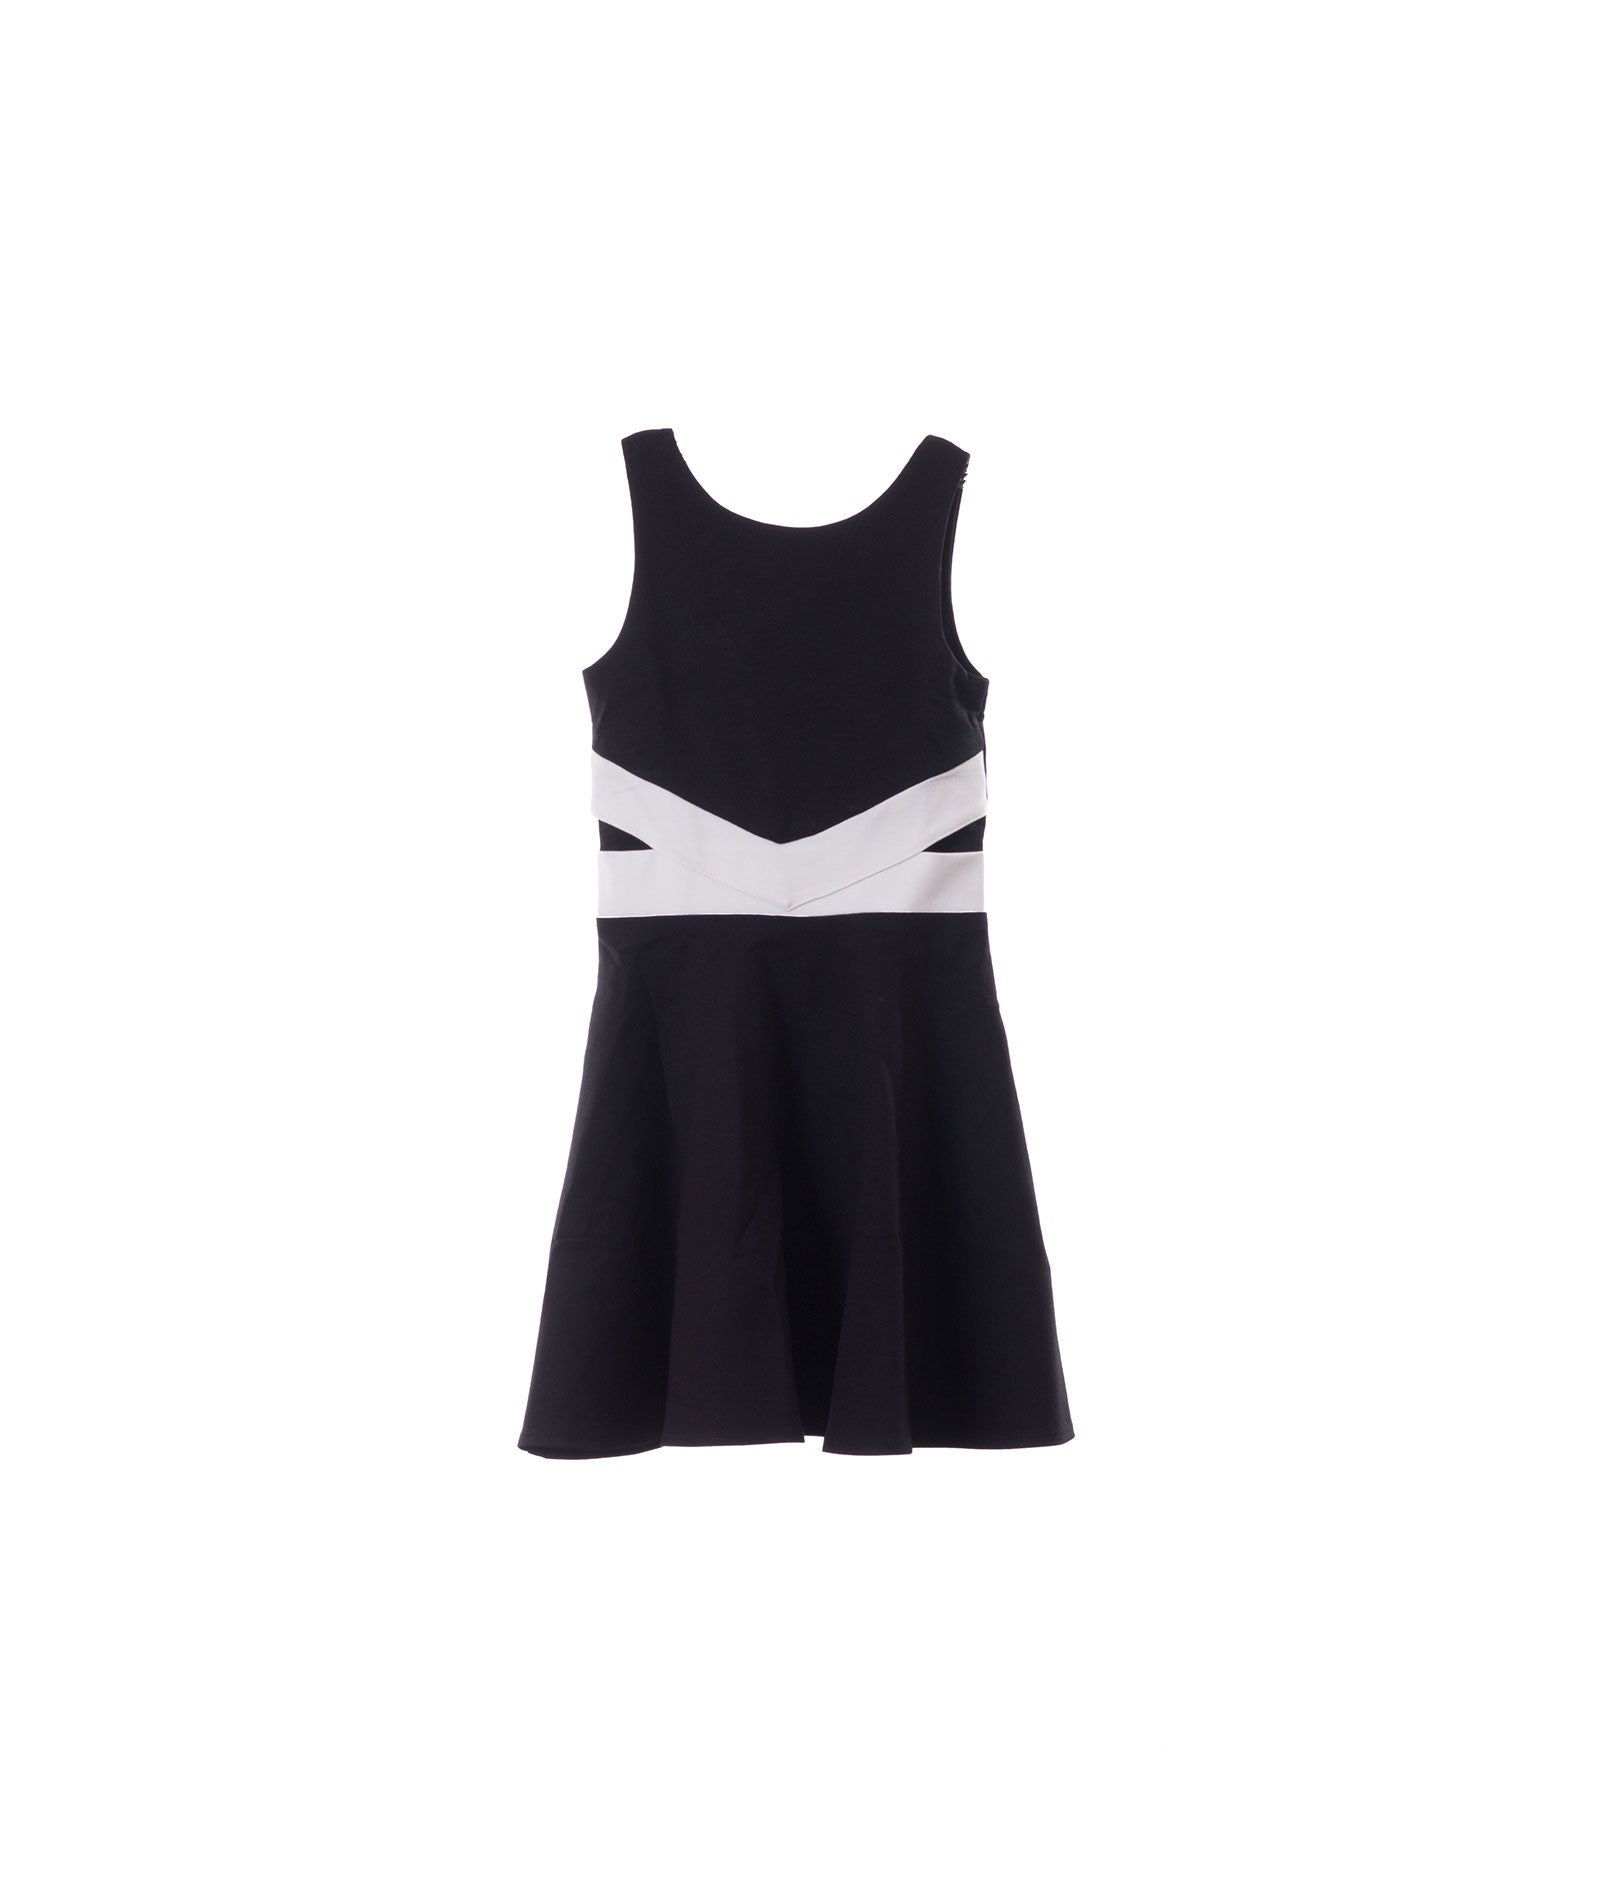 Sally Miller Girls Zoey Dress